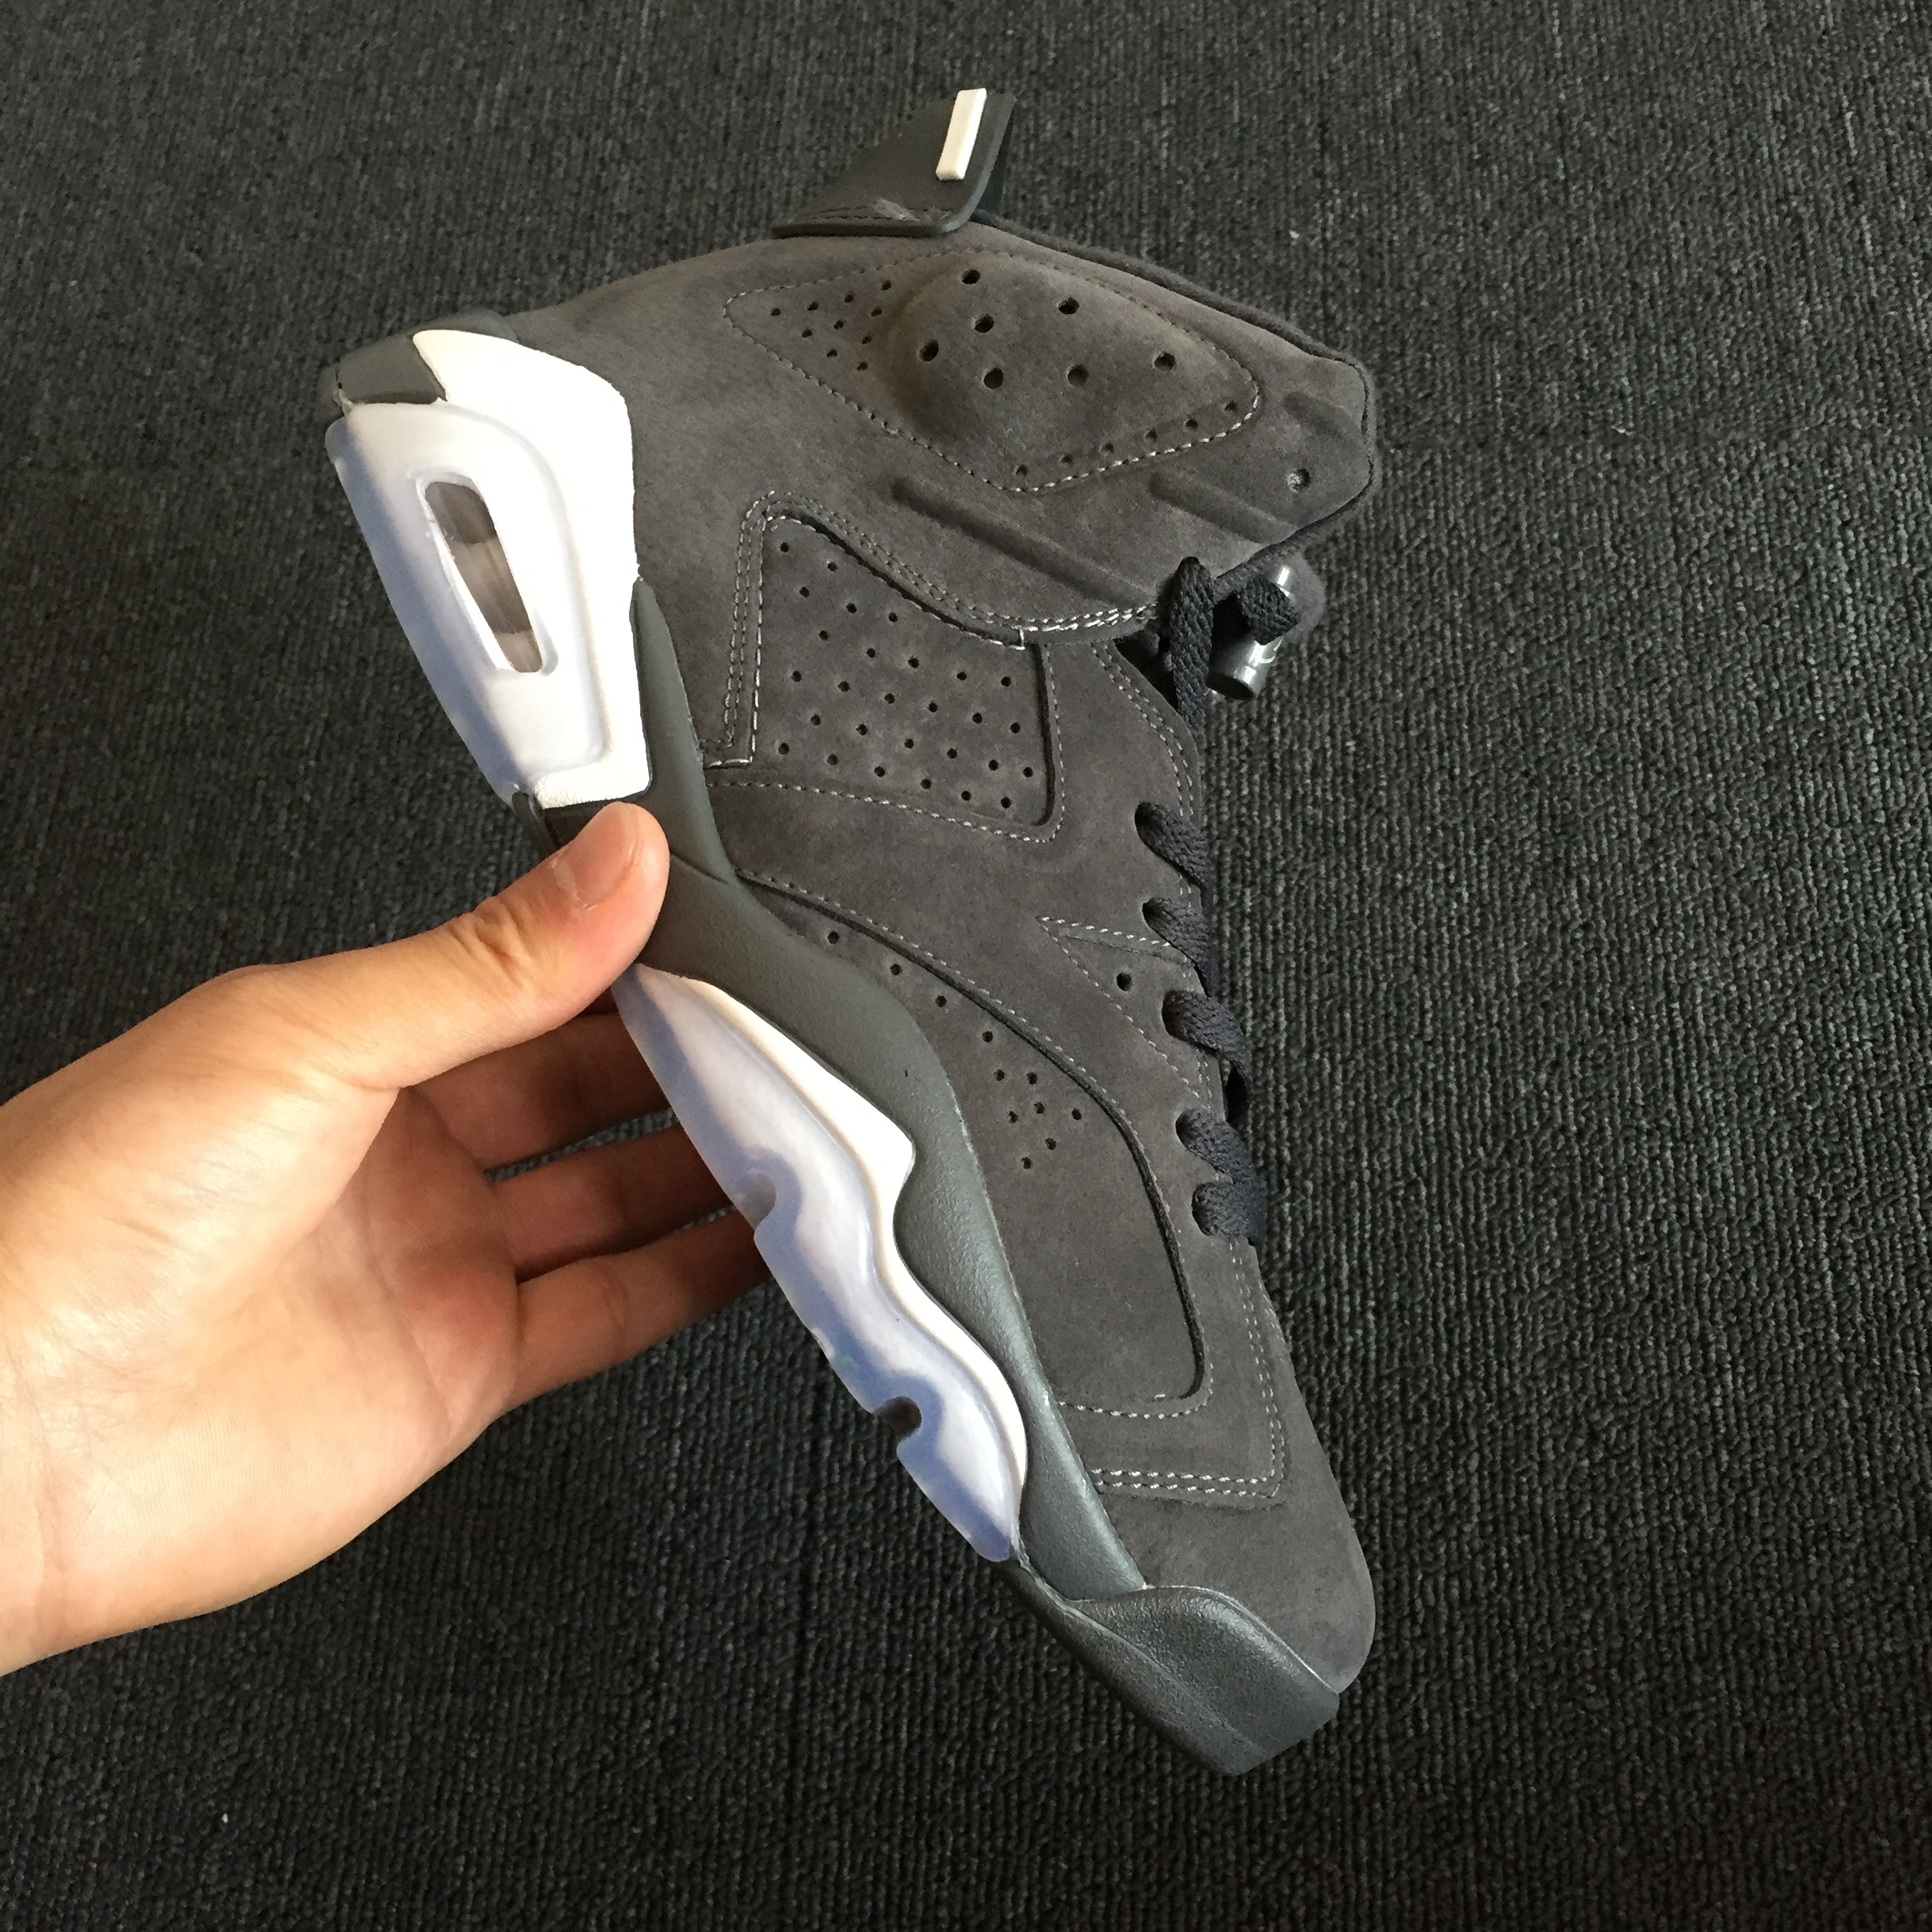 322fb04c517 Air Jordan 6 Cool Grey Suede Outlet, Price: $87.14 - Sneakers, Shoes ...